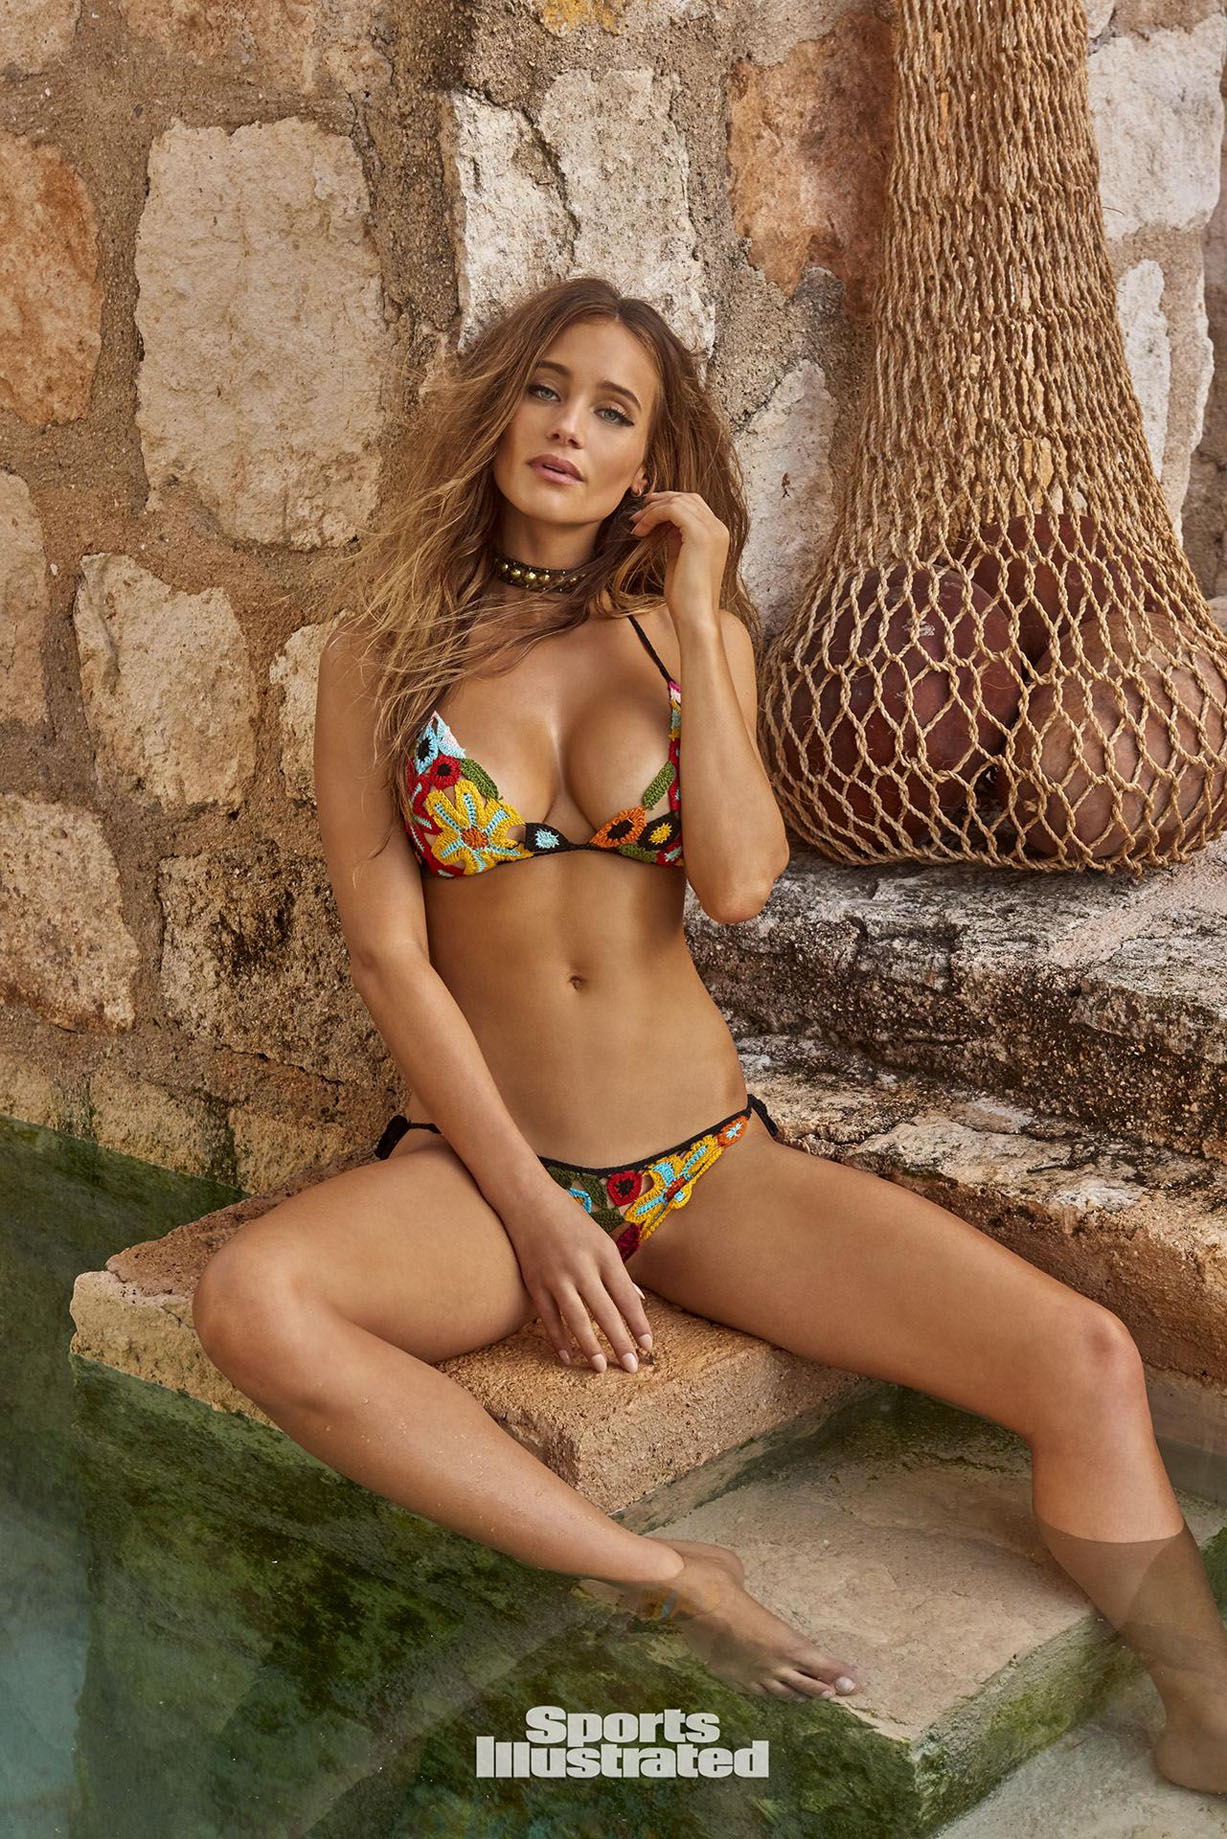 Hannah Jeter / Ханна Джитер в купальниках из новой коллекции Sports Illustrated Swimsuit 2017 issue / in Mexico by Ruven Afanador